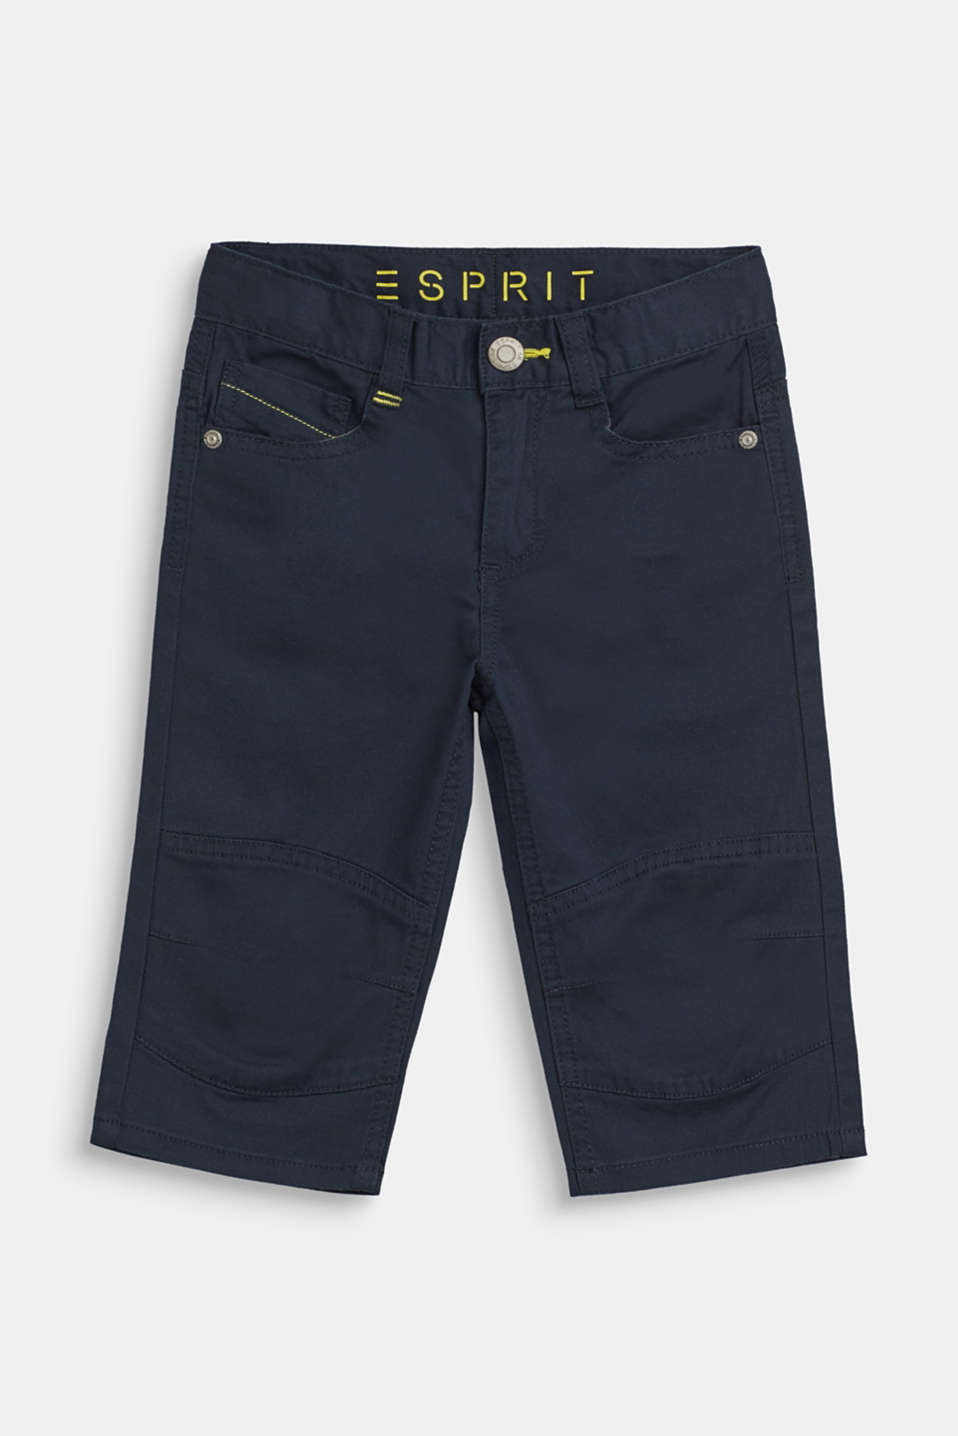 Esprit - Stretch cotton 3/4 trousers with an adjustable waistband